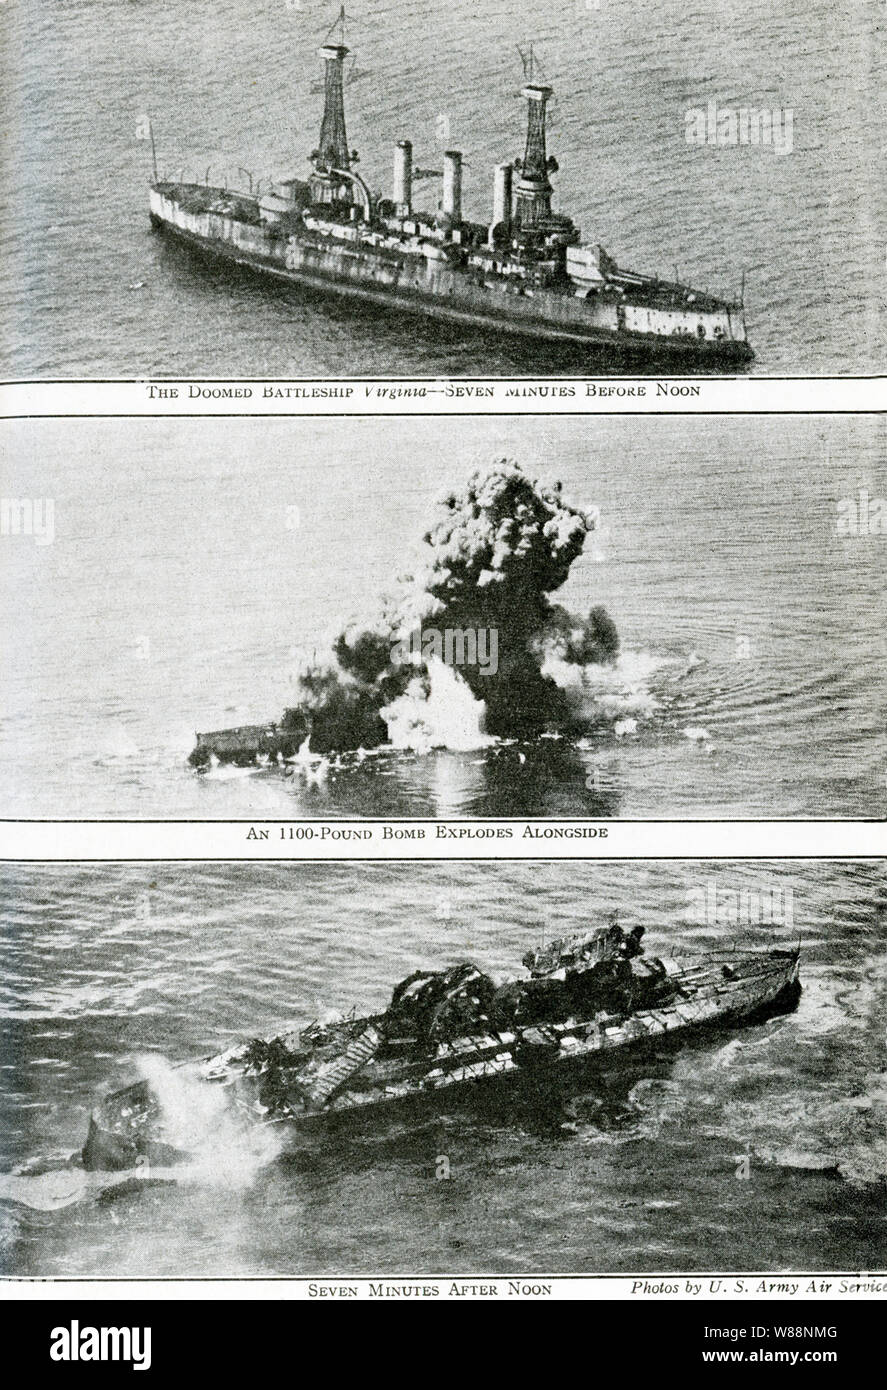 These photos date to September 5, 1923. The caption reads: What a Bomber from the air can do to a battleship. Top: The doomed battleship Virginia - Seven Minutes Before Noon; Middle: An 1100-pound bomb explodes alongside; Bottom: Seven Minues after Noon. In 1922, the U.S. War Department classified the Virginia as a target ship for bombing tests, along with her sister ship the USS New Jersey. The New Jersey was bombed first and sunk and then the Virginia. Stock Photo